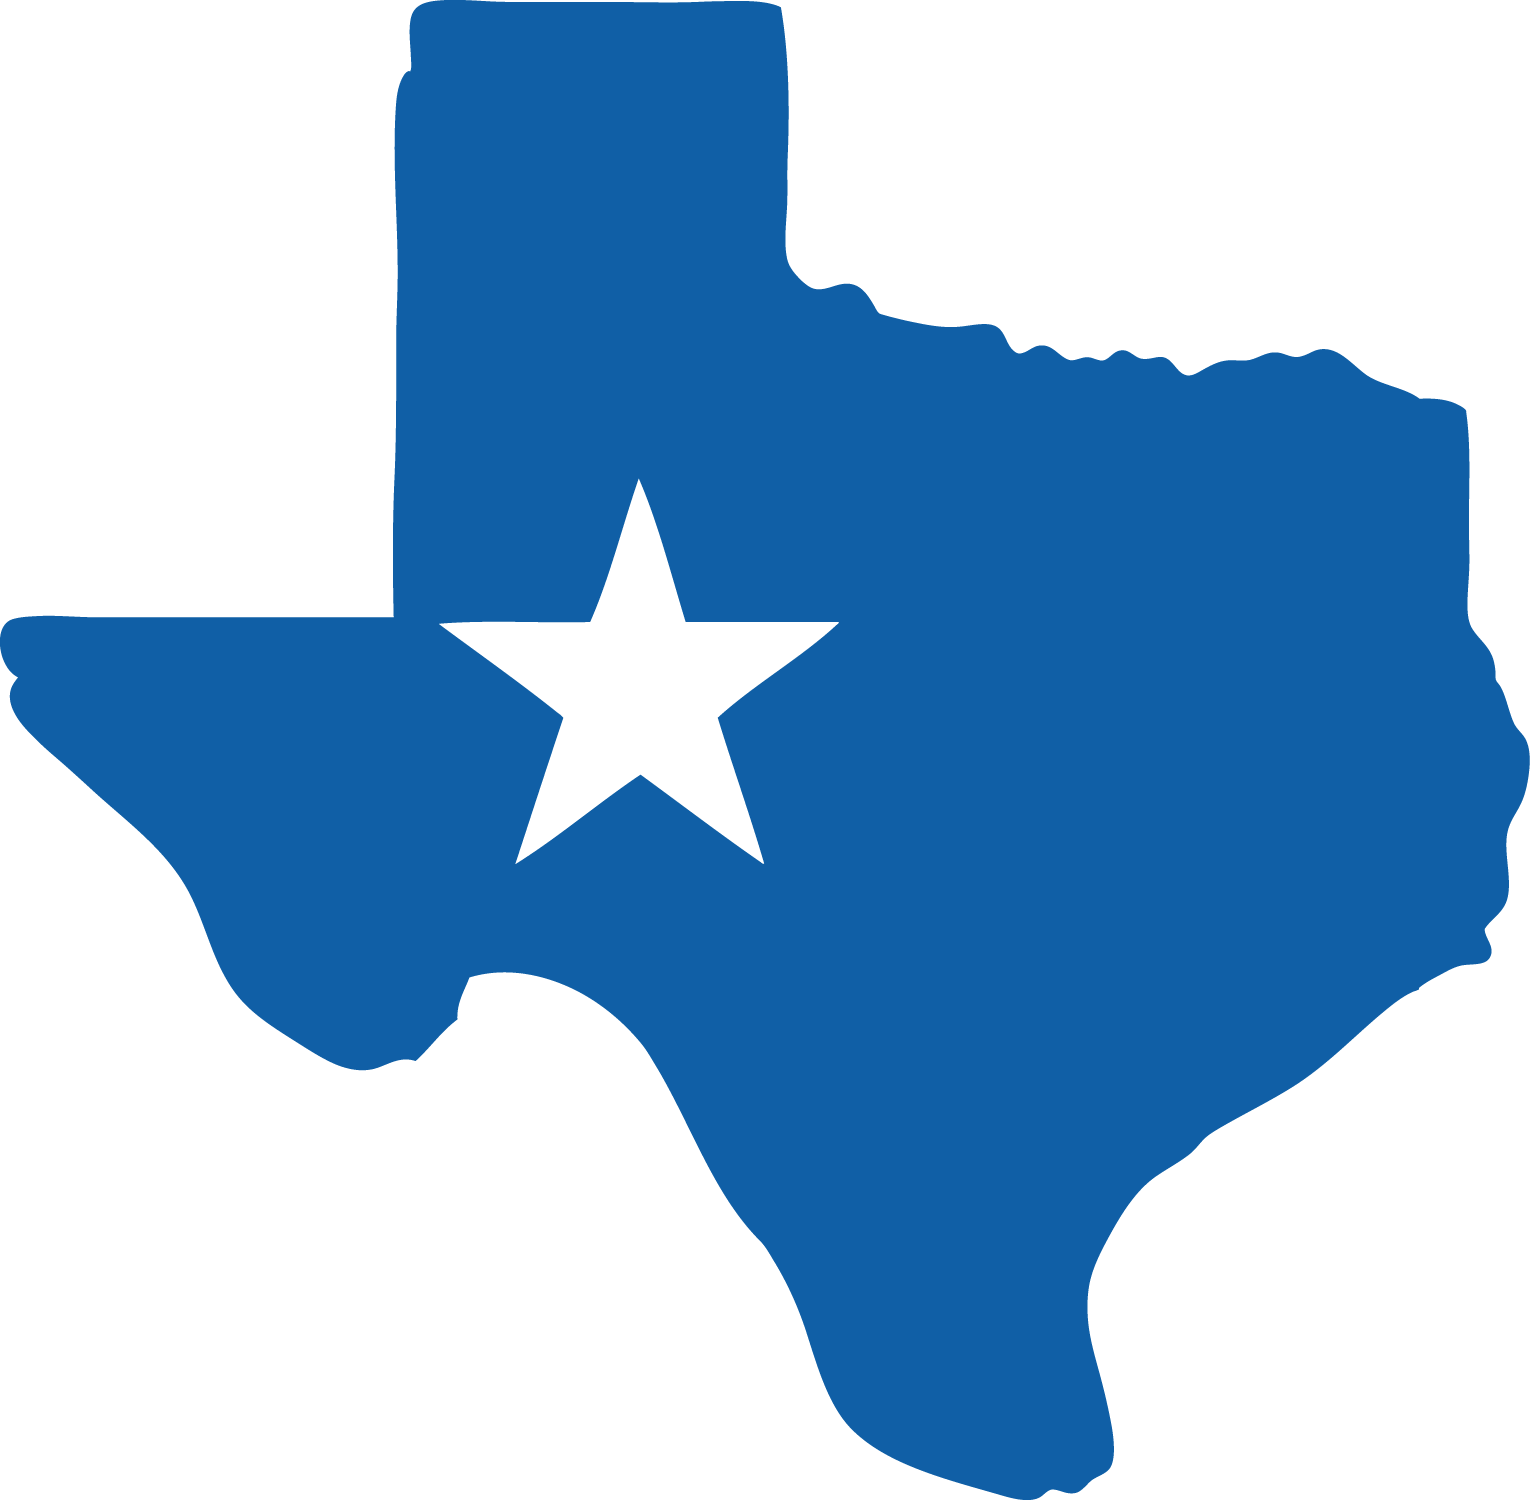 State of texas logo clip art vector State of texas logo clip art - ClipartFest vector